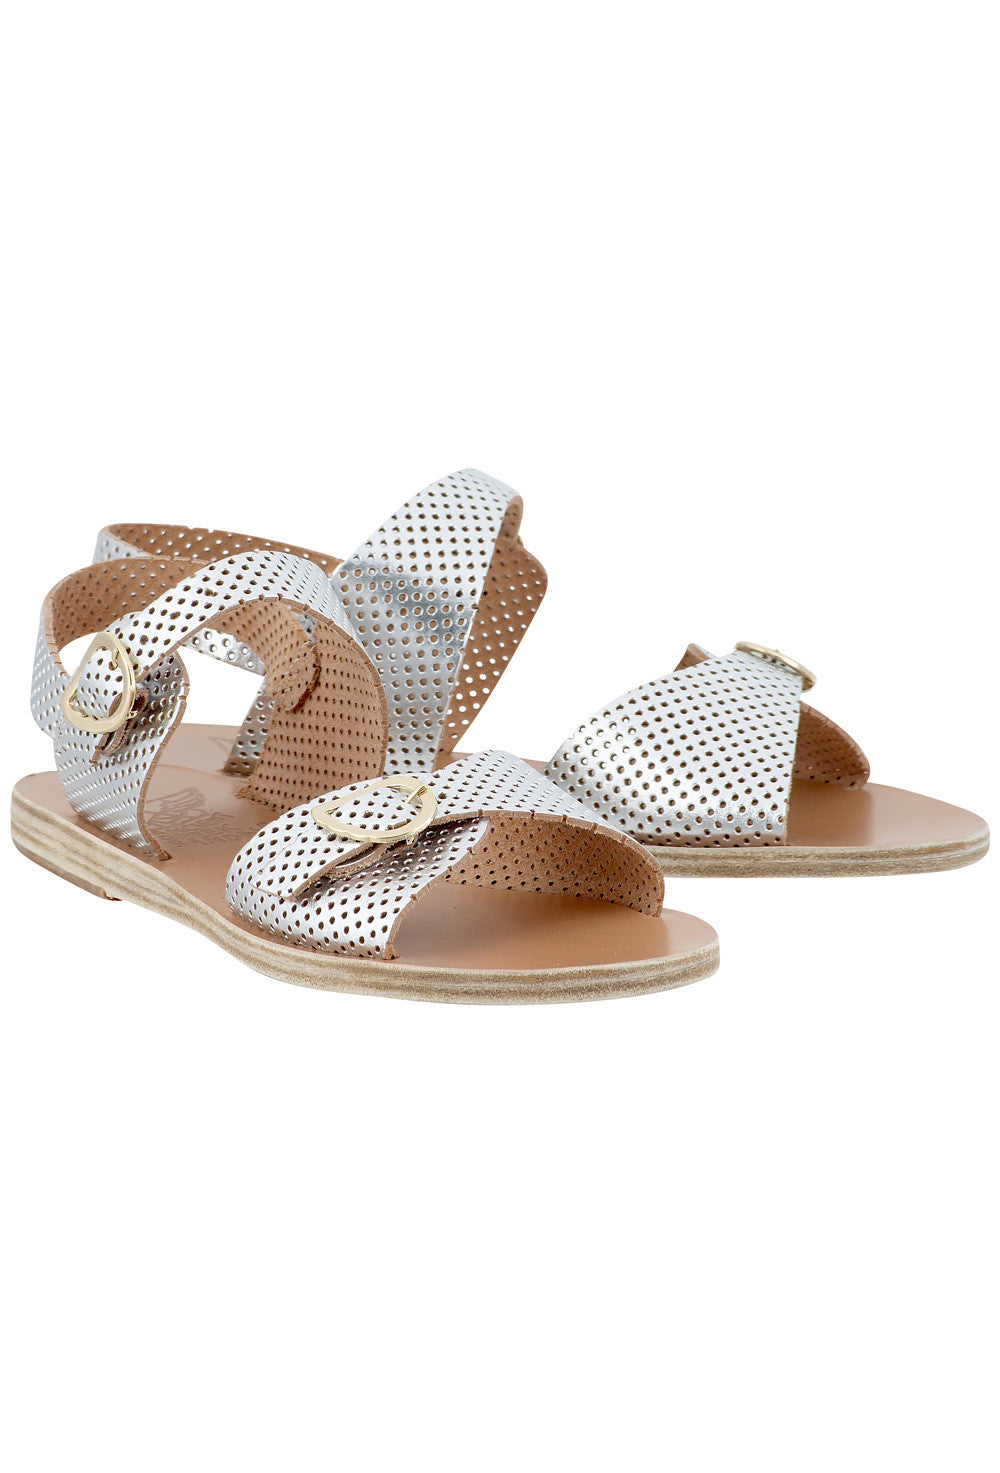 53aacc0a8 Irini Silver Leather Flat Sandals